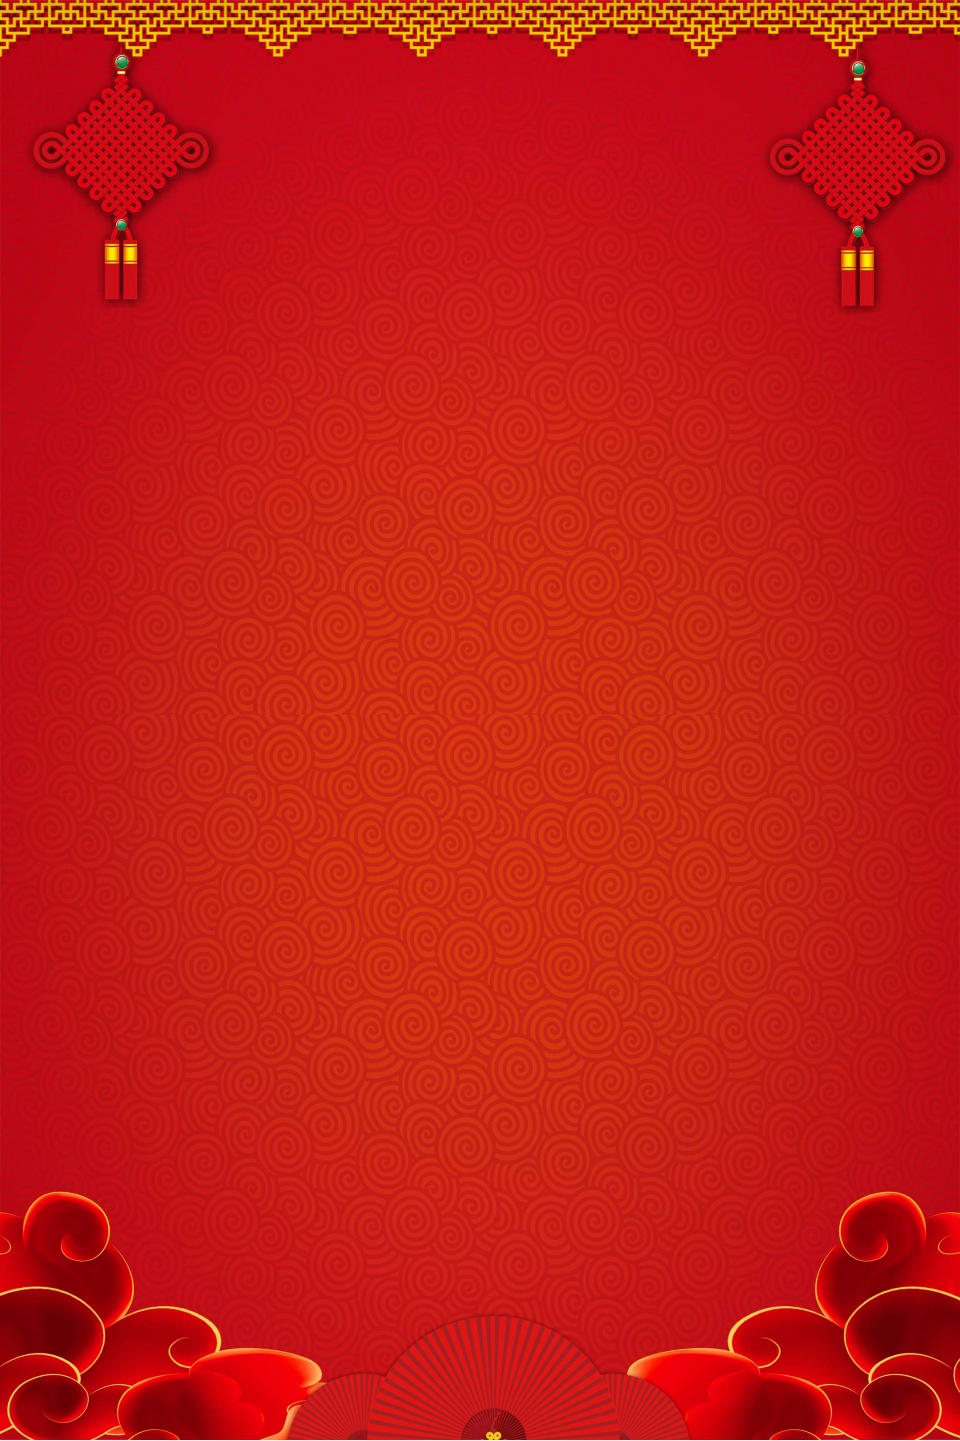 red festive chinese wedding poster background material